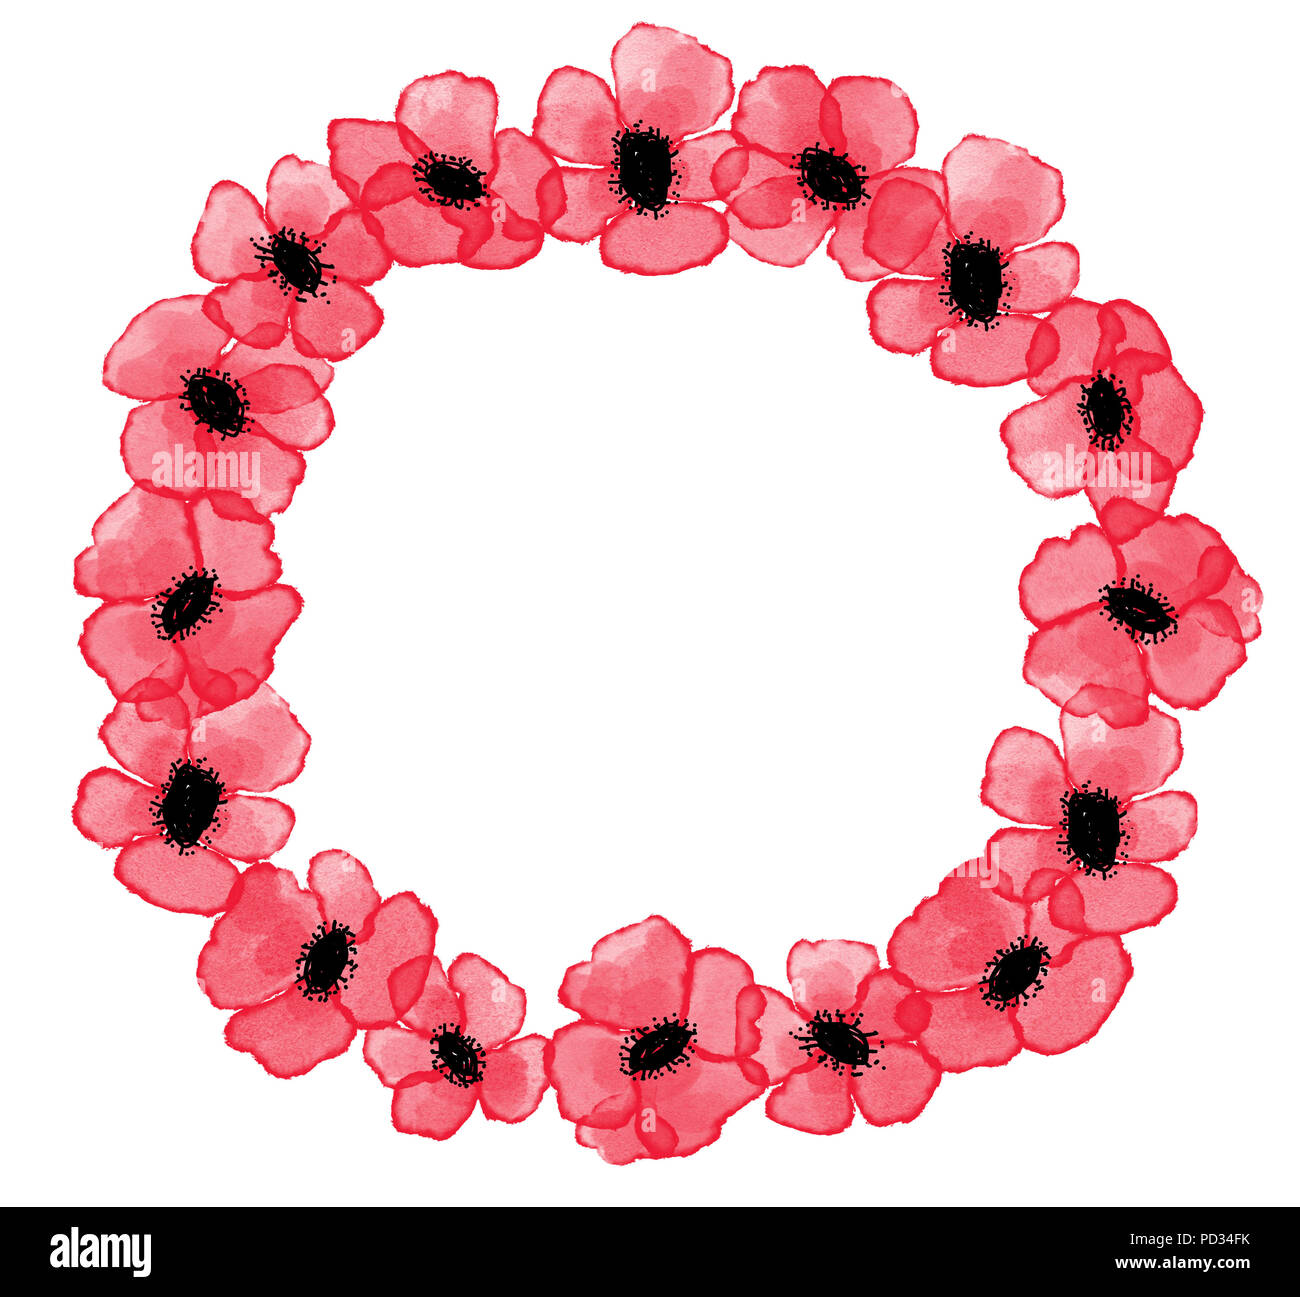 Digital Watercolor Red Poppies Wreath On White Background Symbol Of